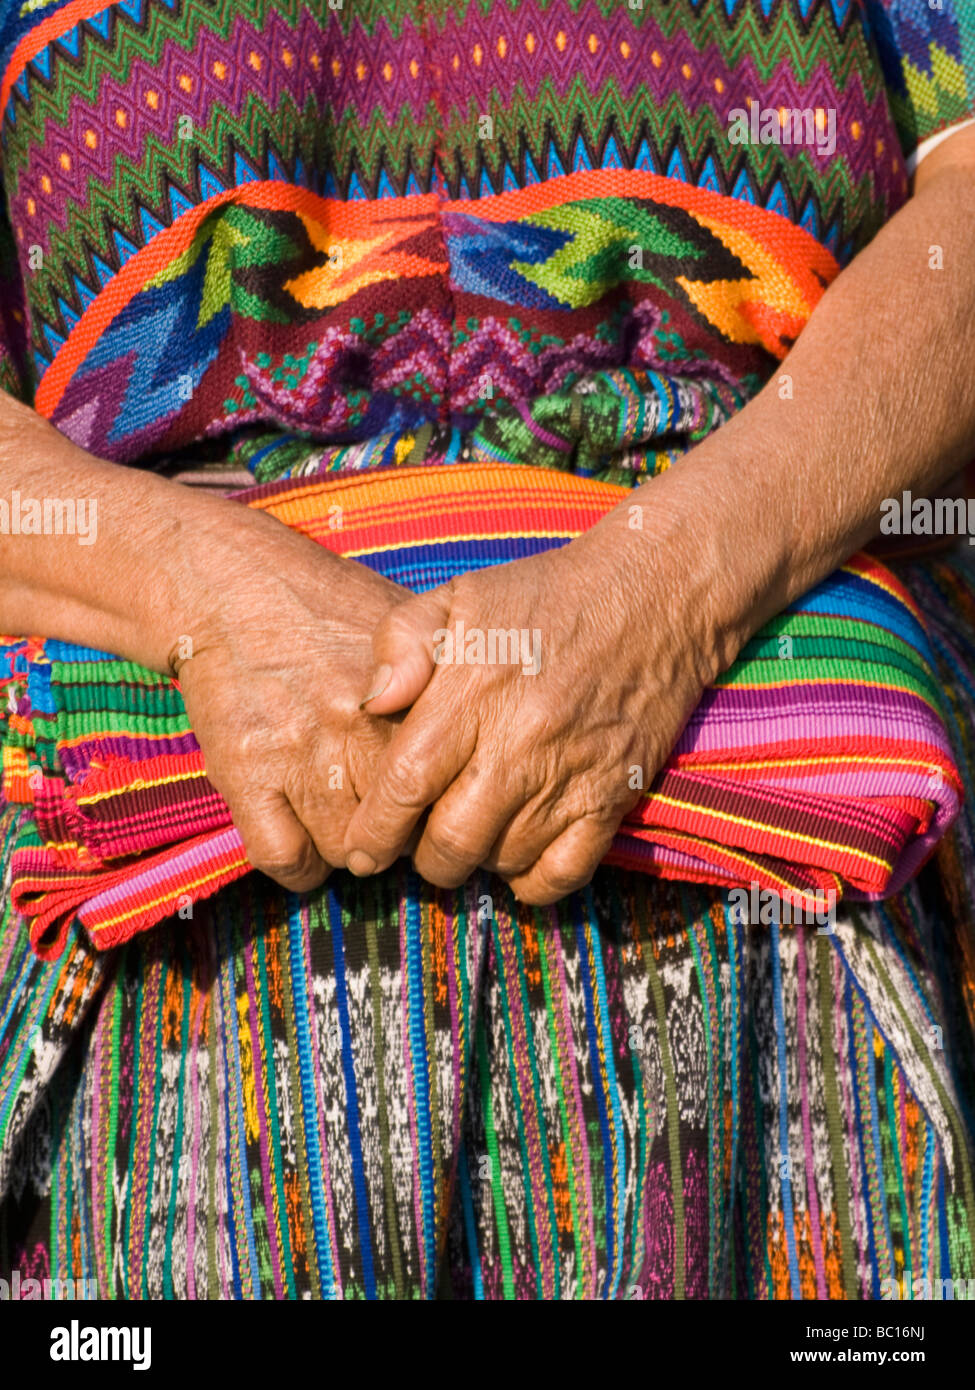 The hands of an indigenous Guatemalan woman holding traditional fabric. - Stock Image